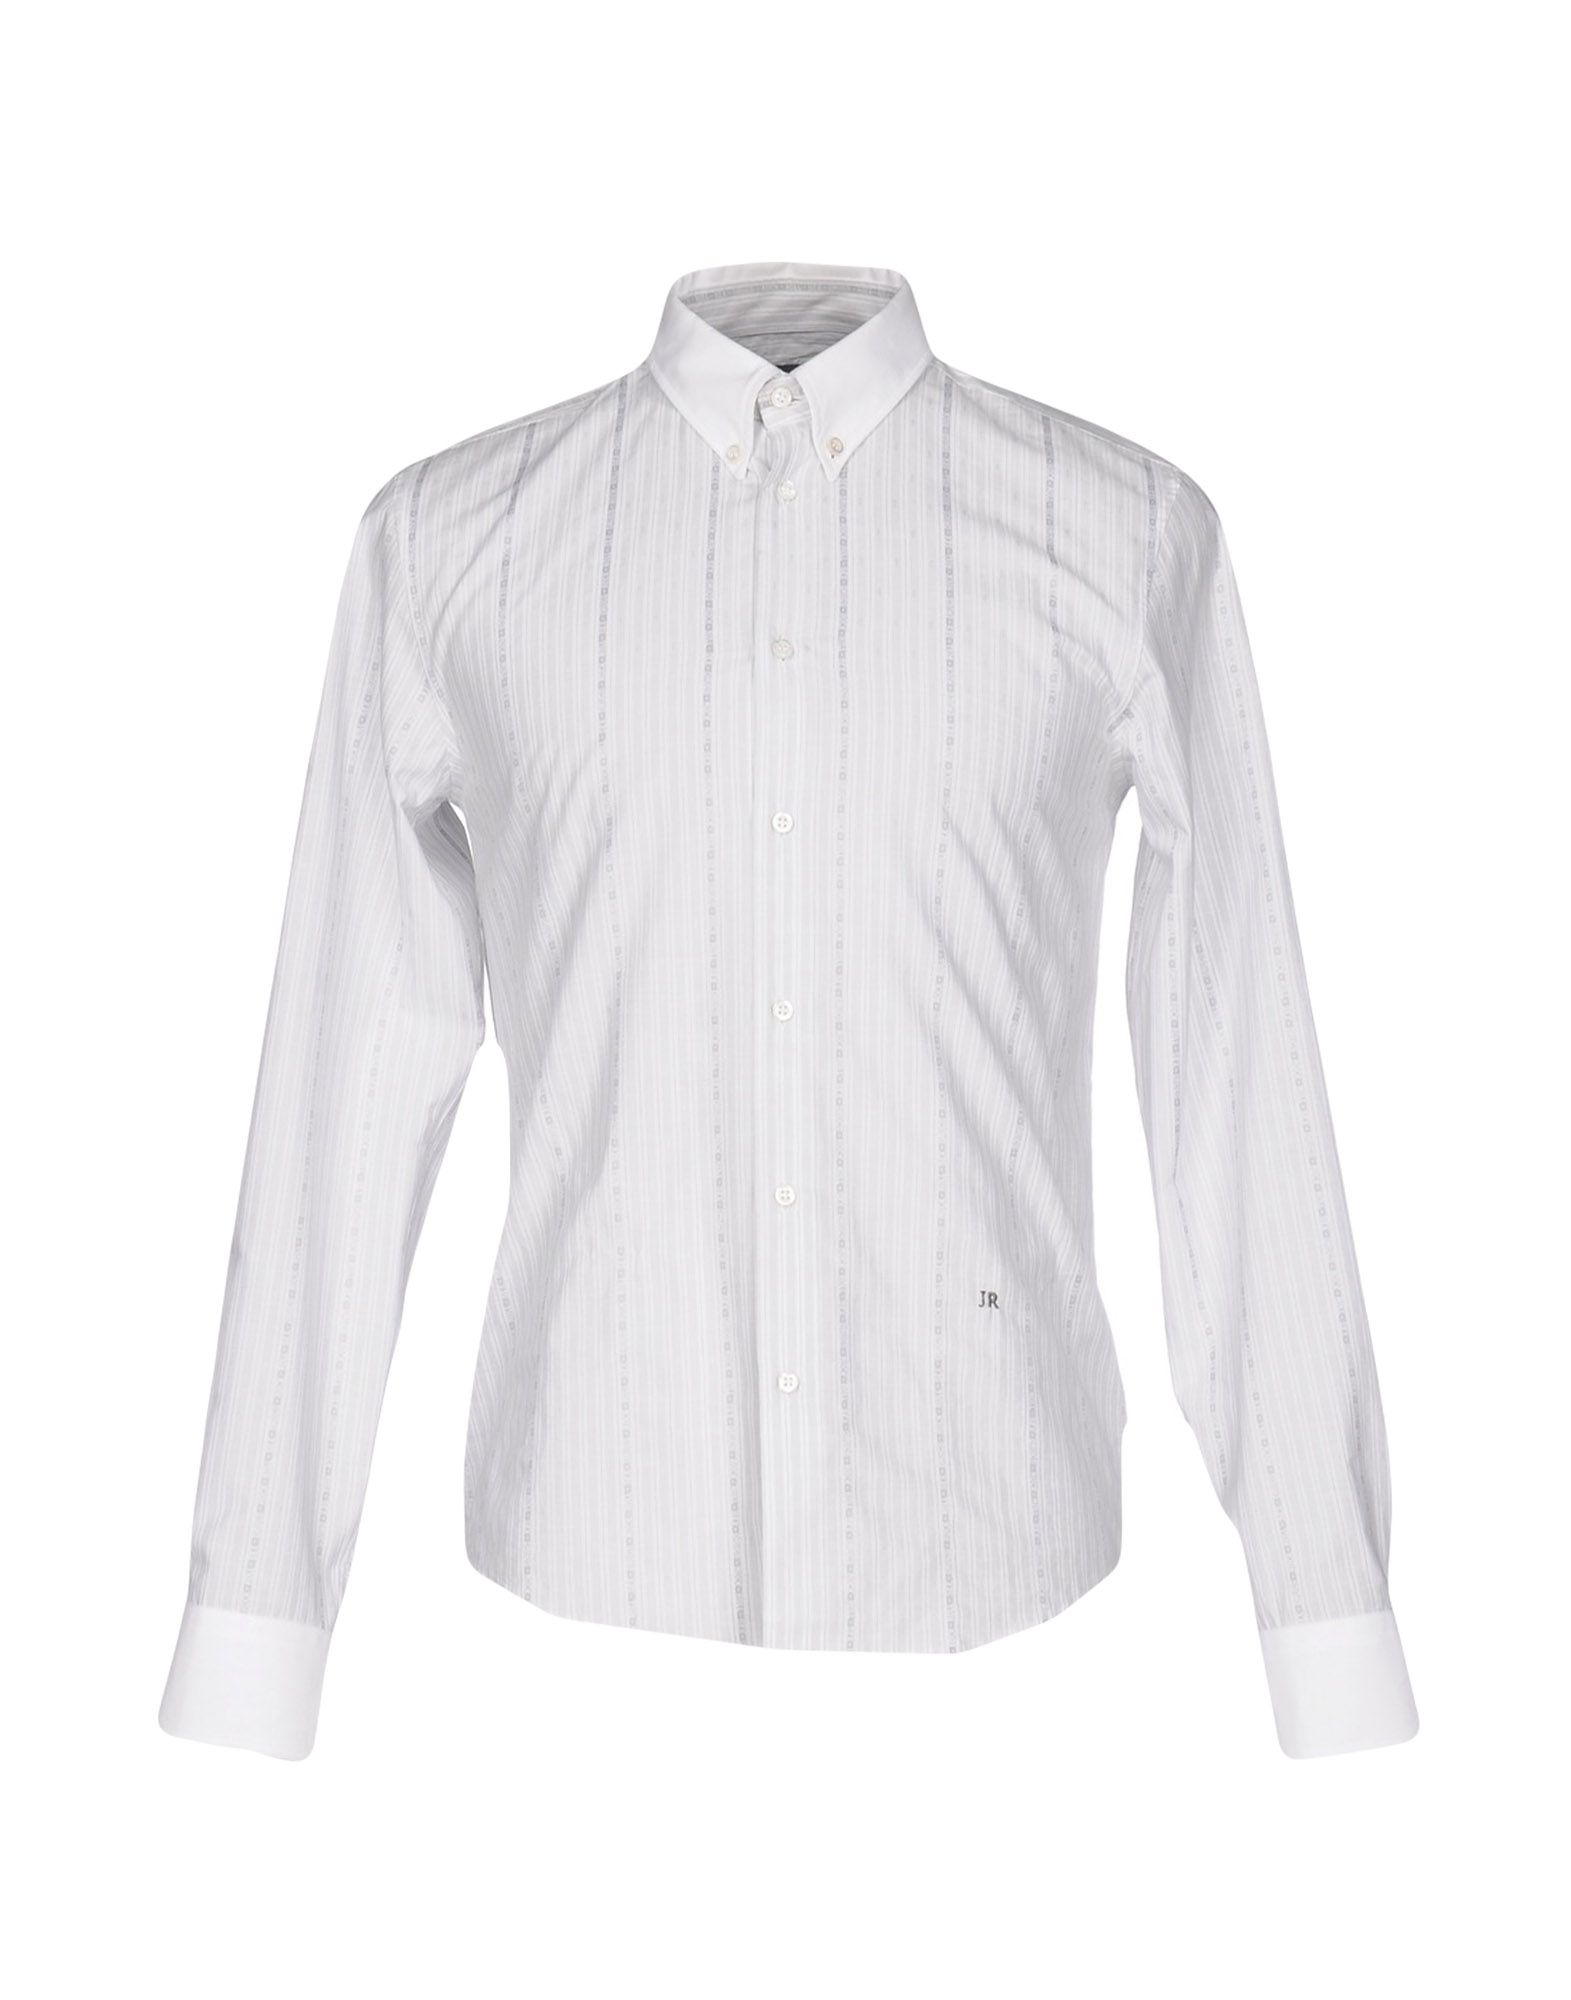 Camicia su Acquista Uomo John Righe A online Richmond HwqRrH1